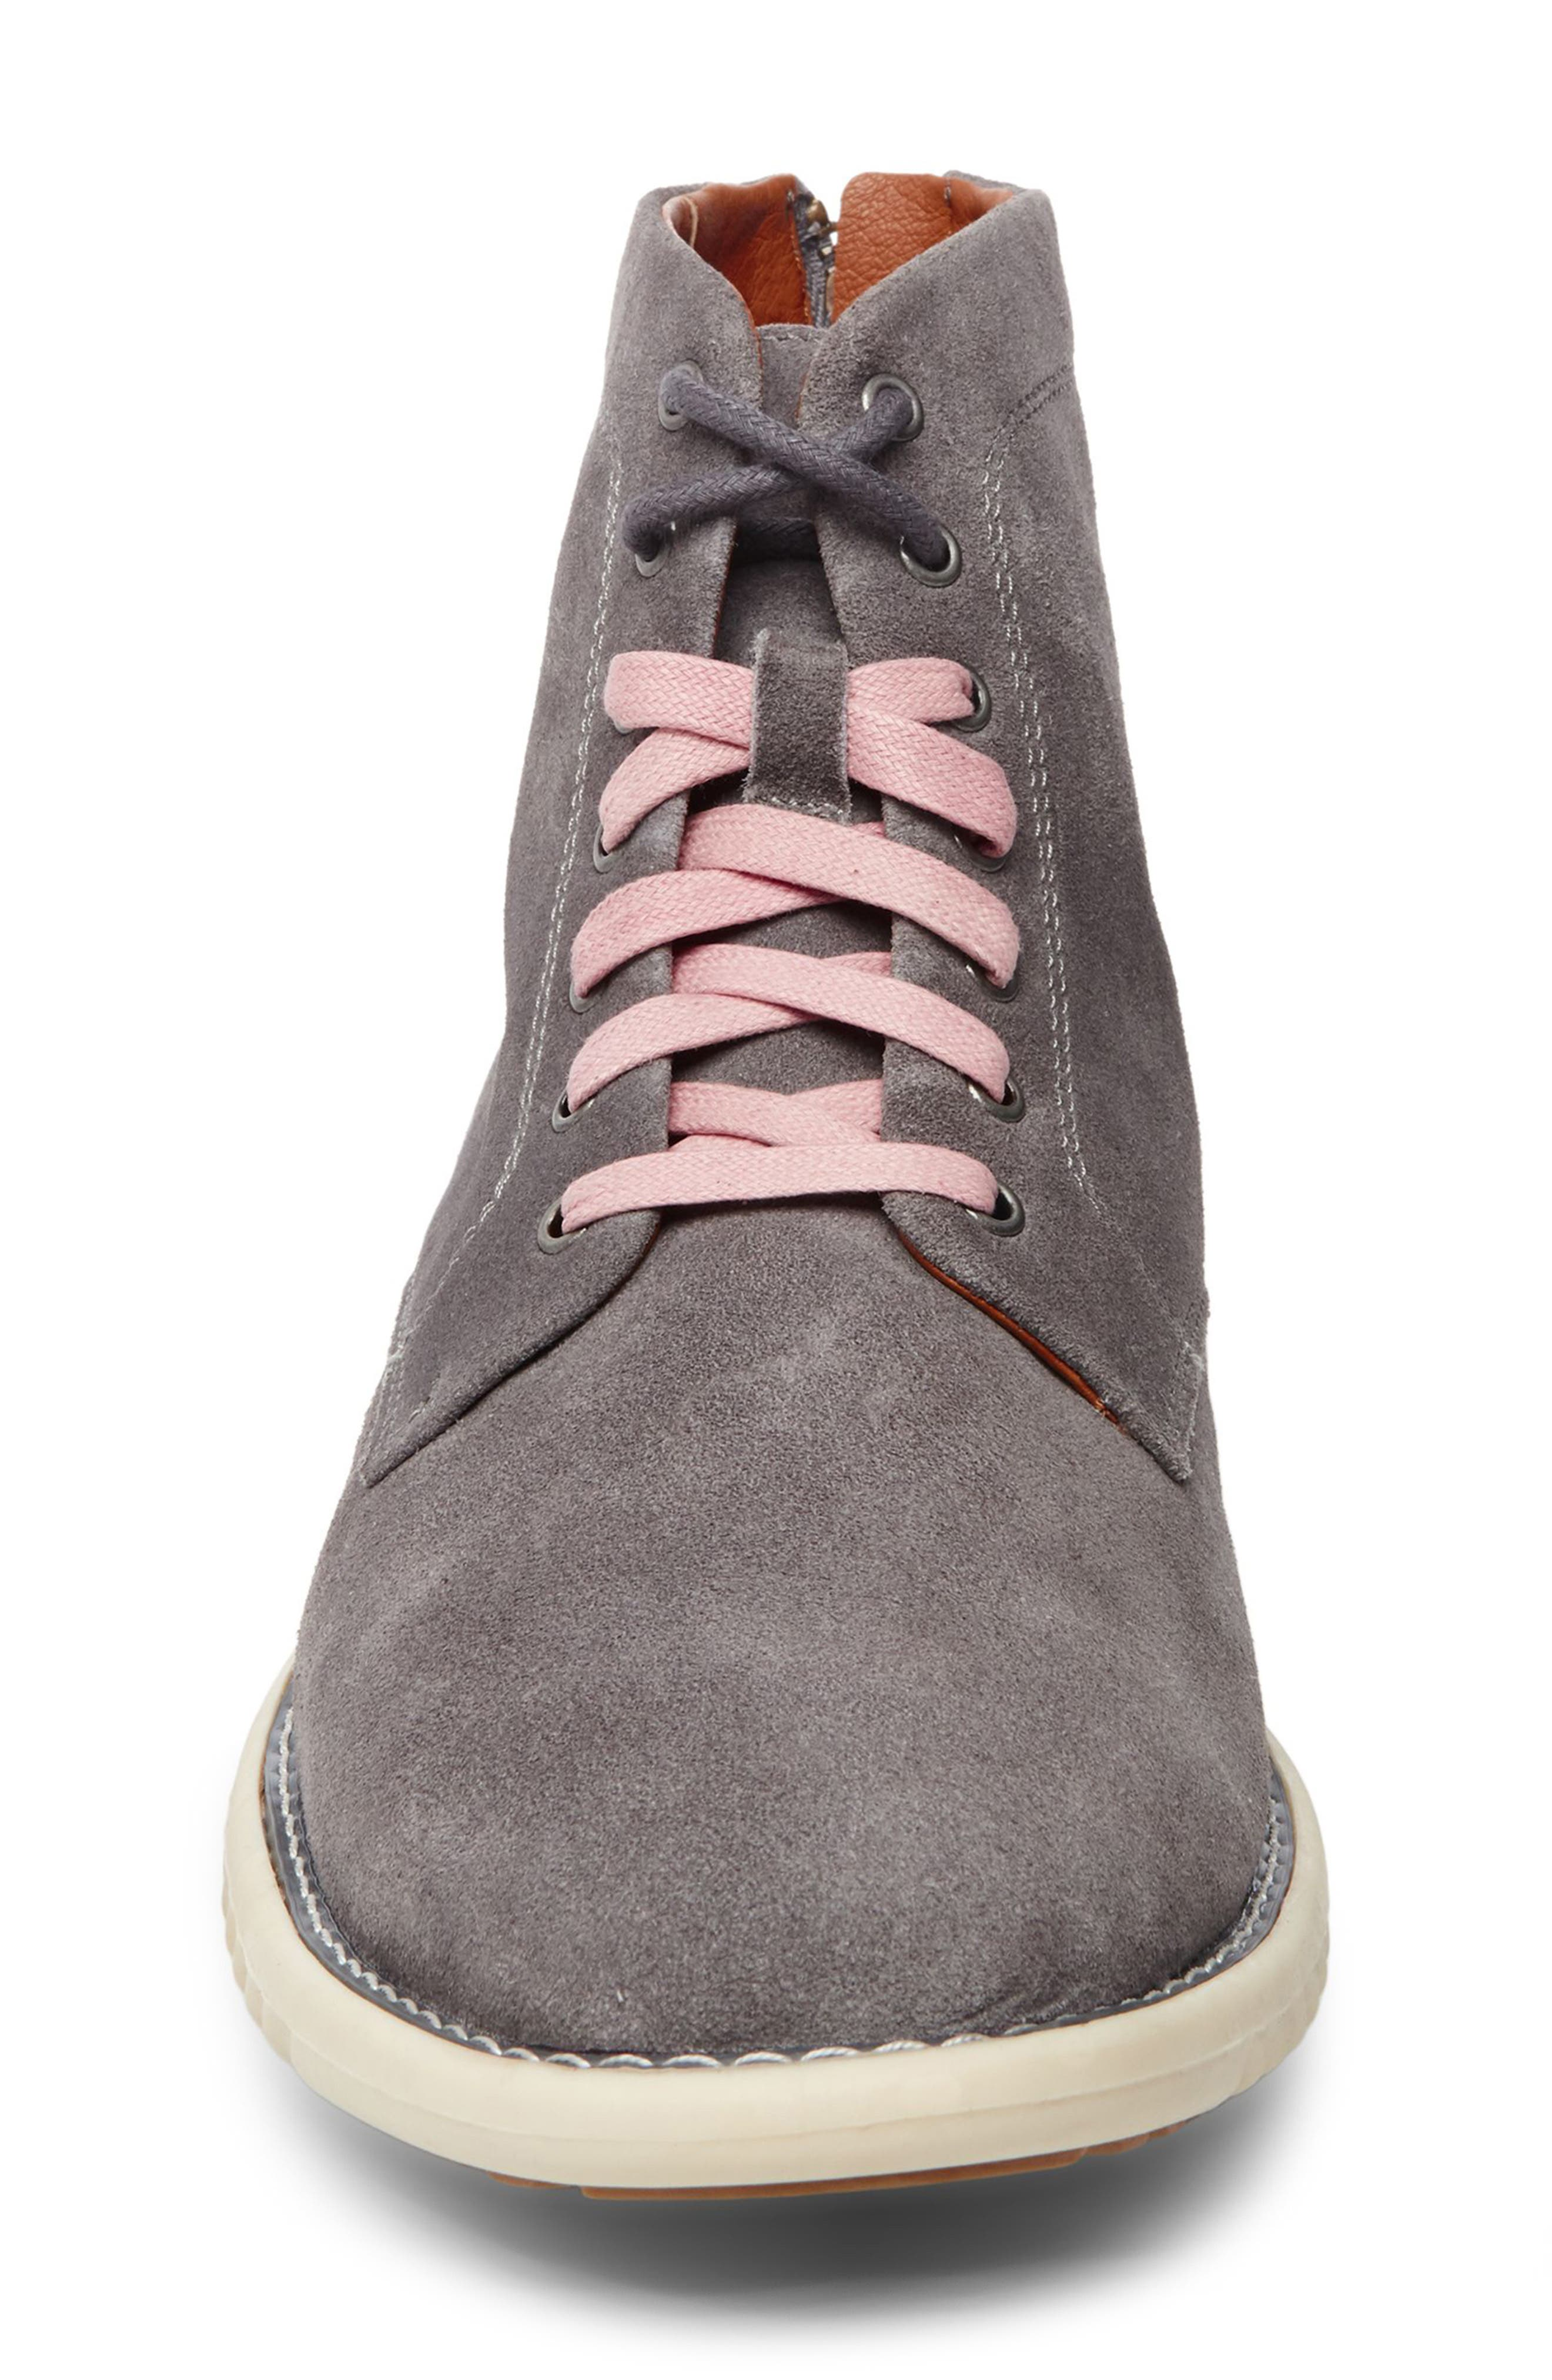 Verner Suede Plain Toe Boot,                             Alternate thumbnail 4, color,                             Dark Grey Suede